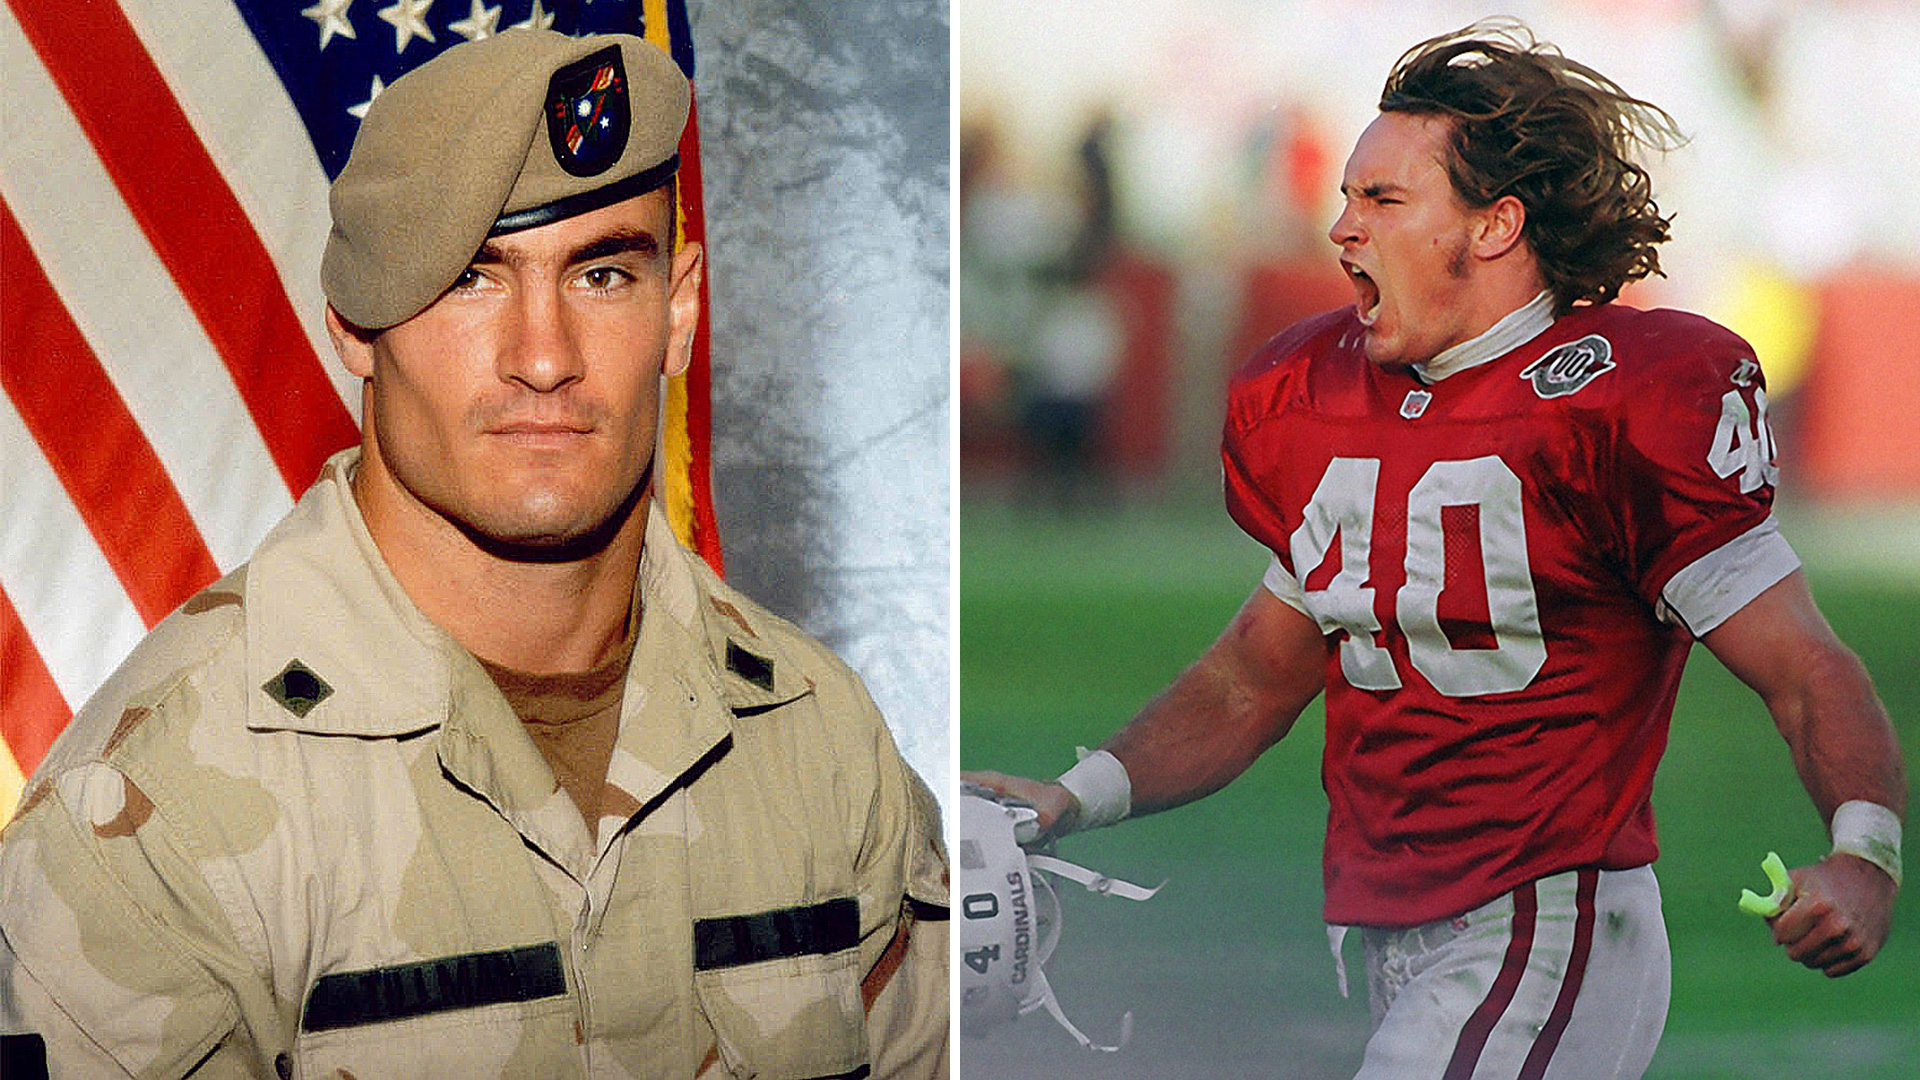 The tragic death of pat tillman in afghanistan